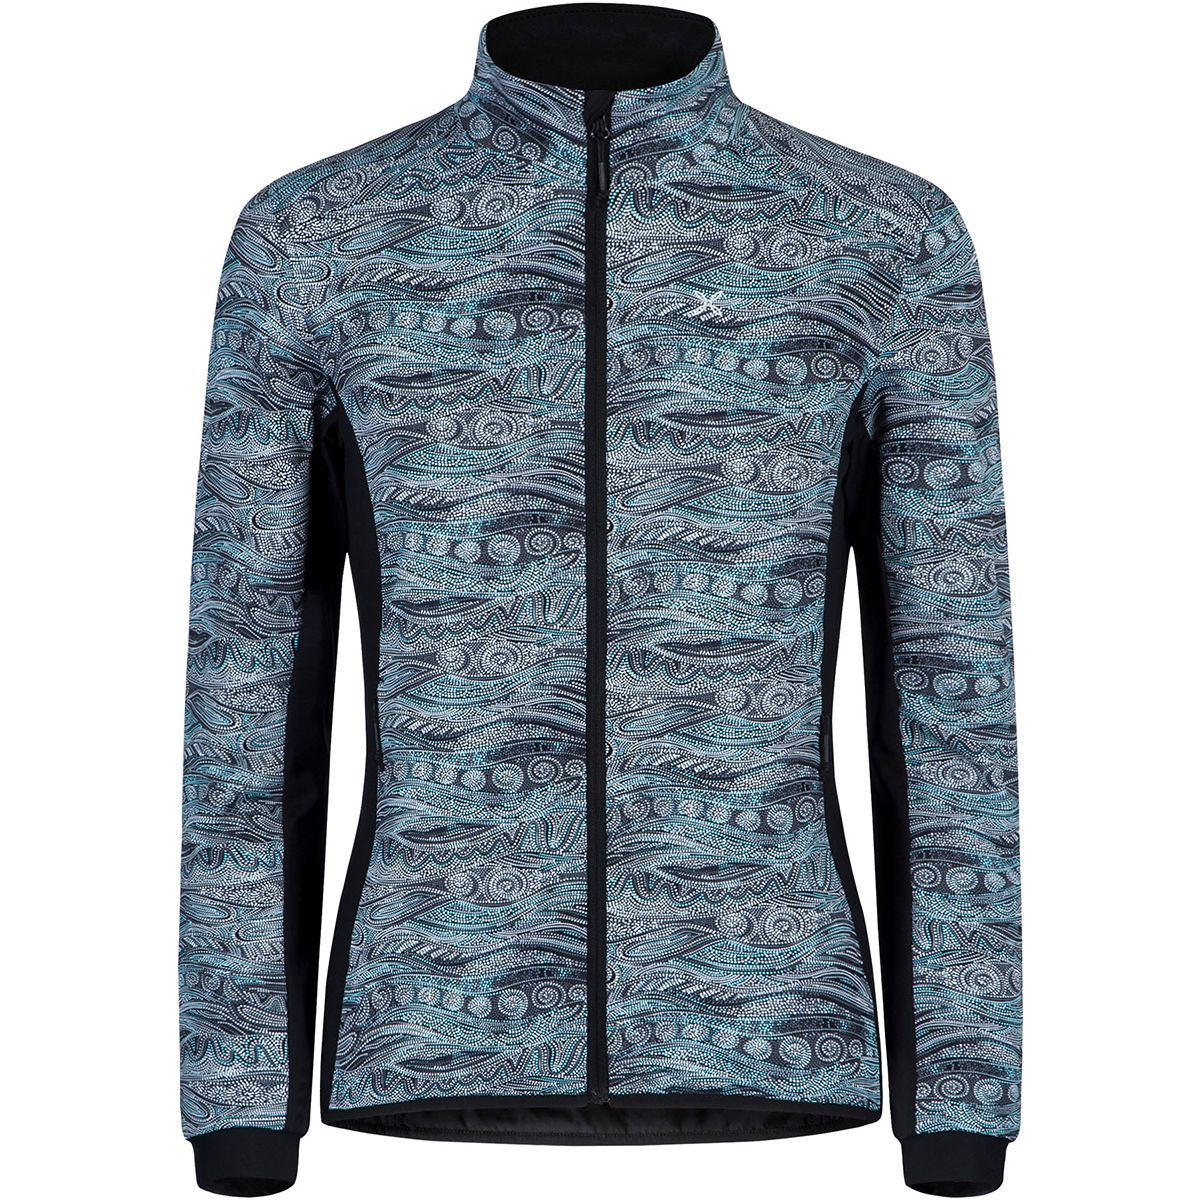 Montura Damen Sound Thermic Jacke (Größe XS, Blau) | Fleecejacken > Damen